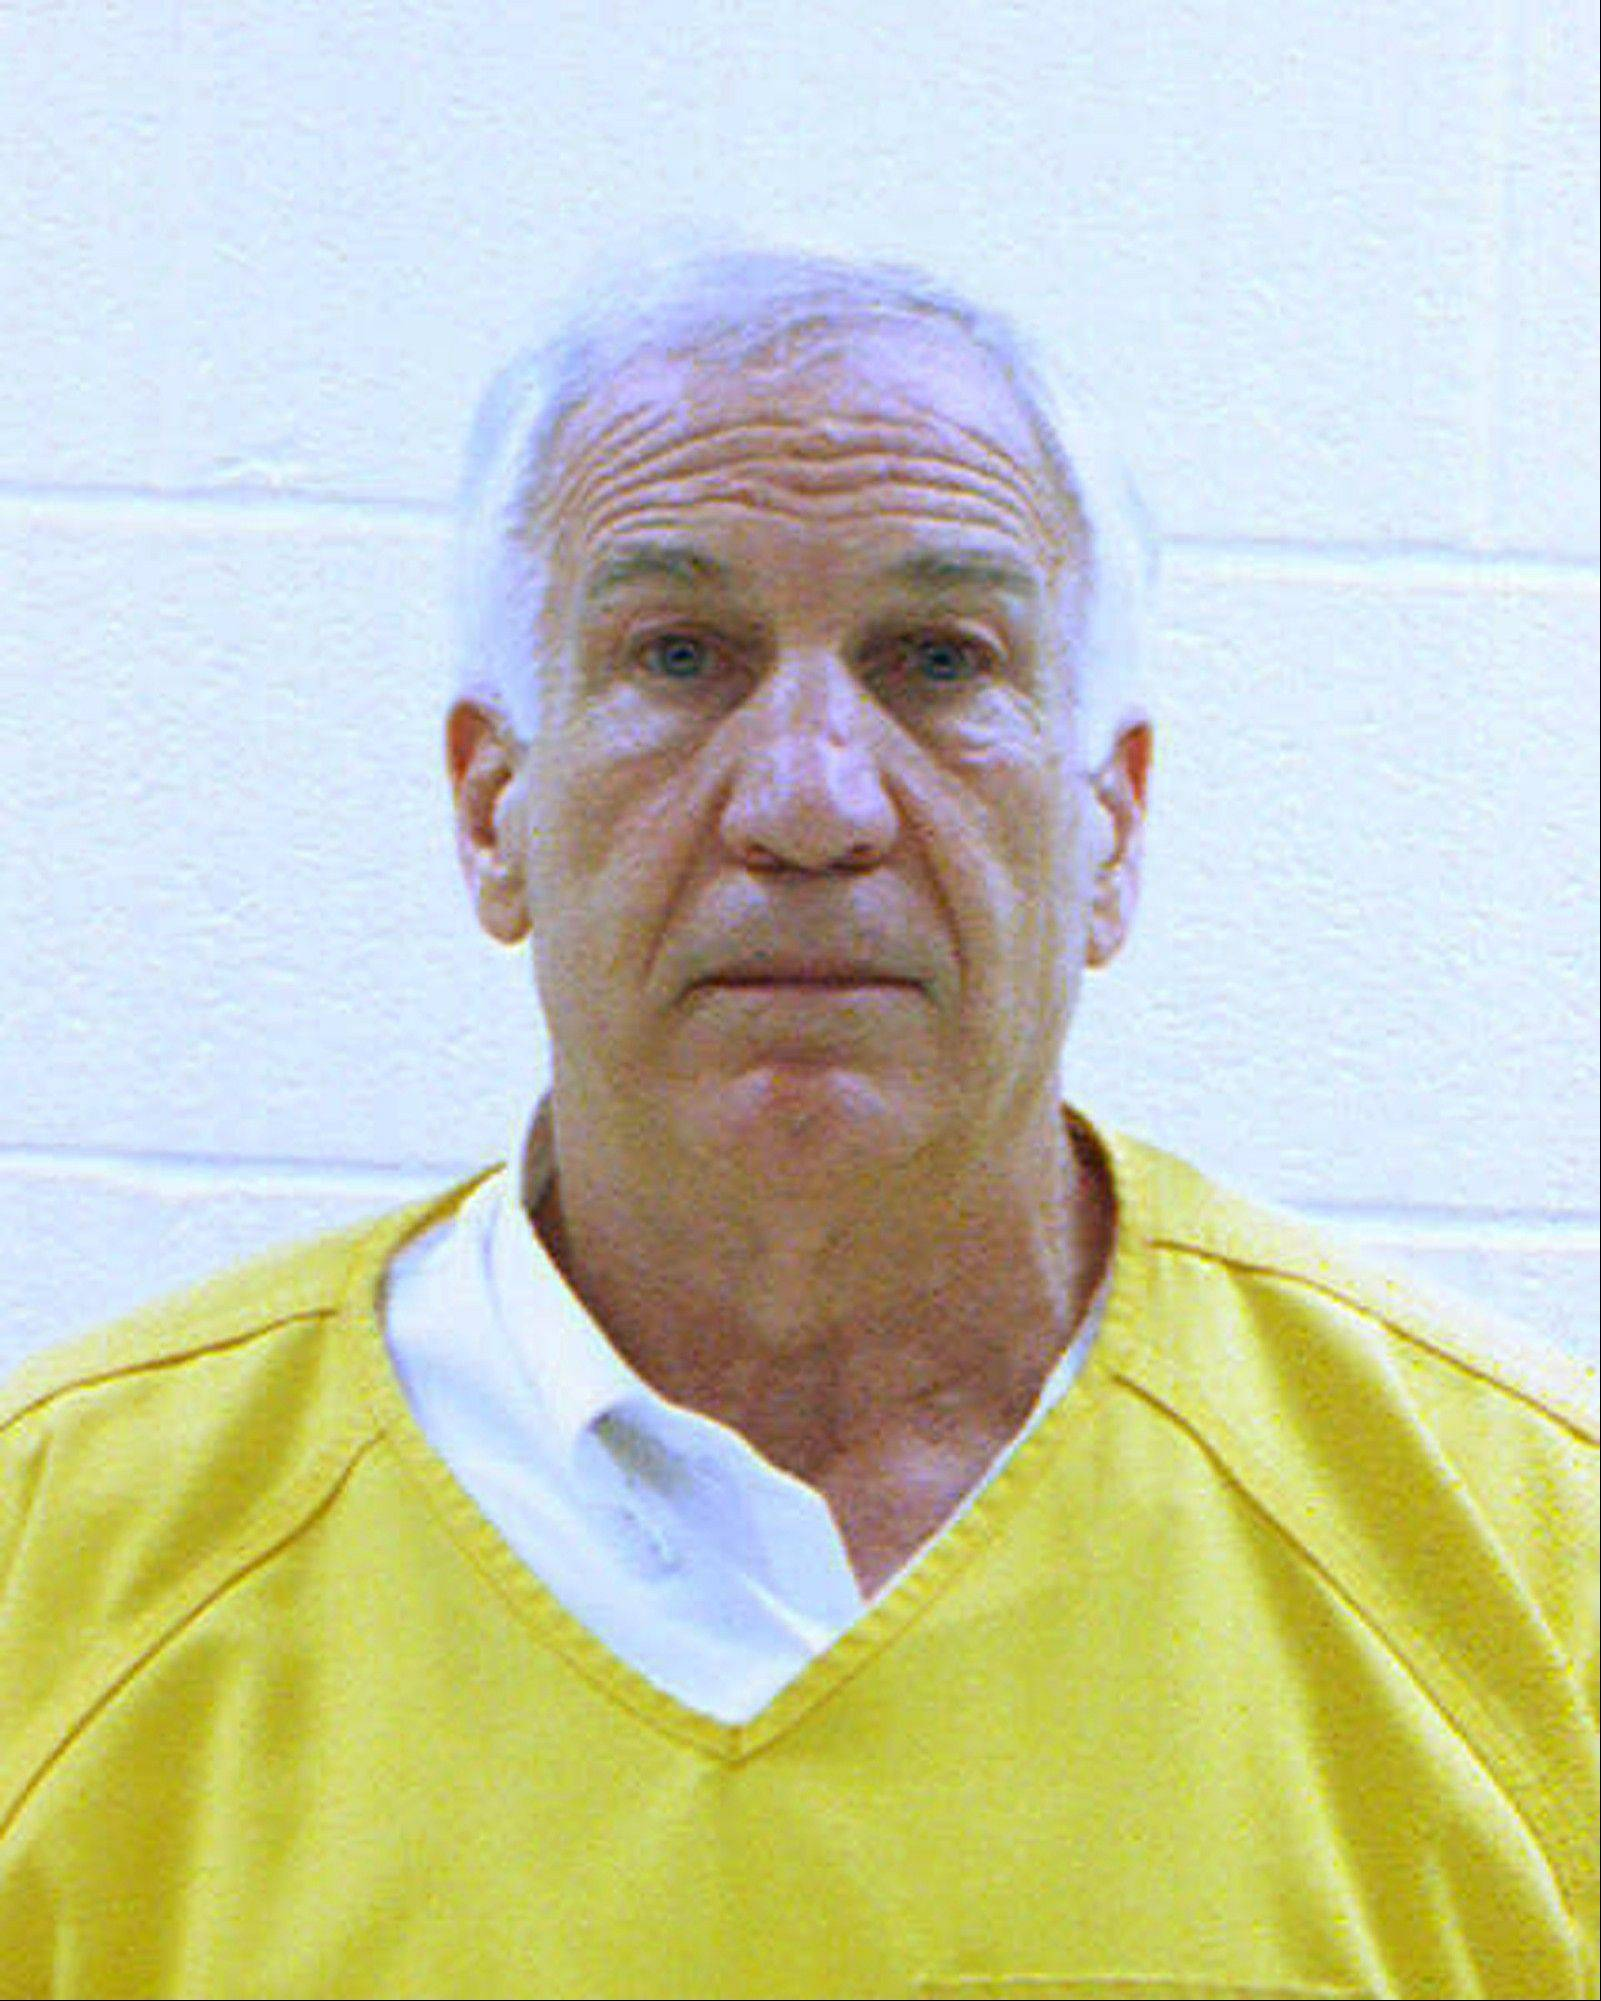 Pa. gov: 2-year Sandusky investigation necessary